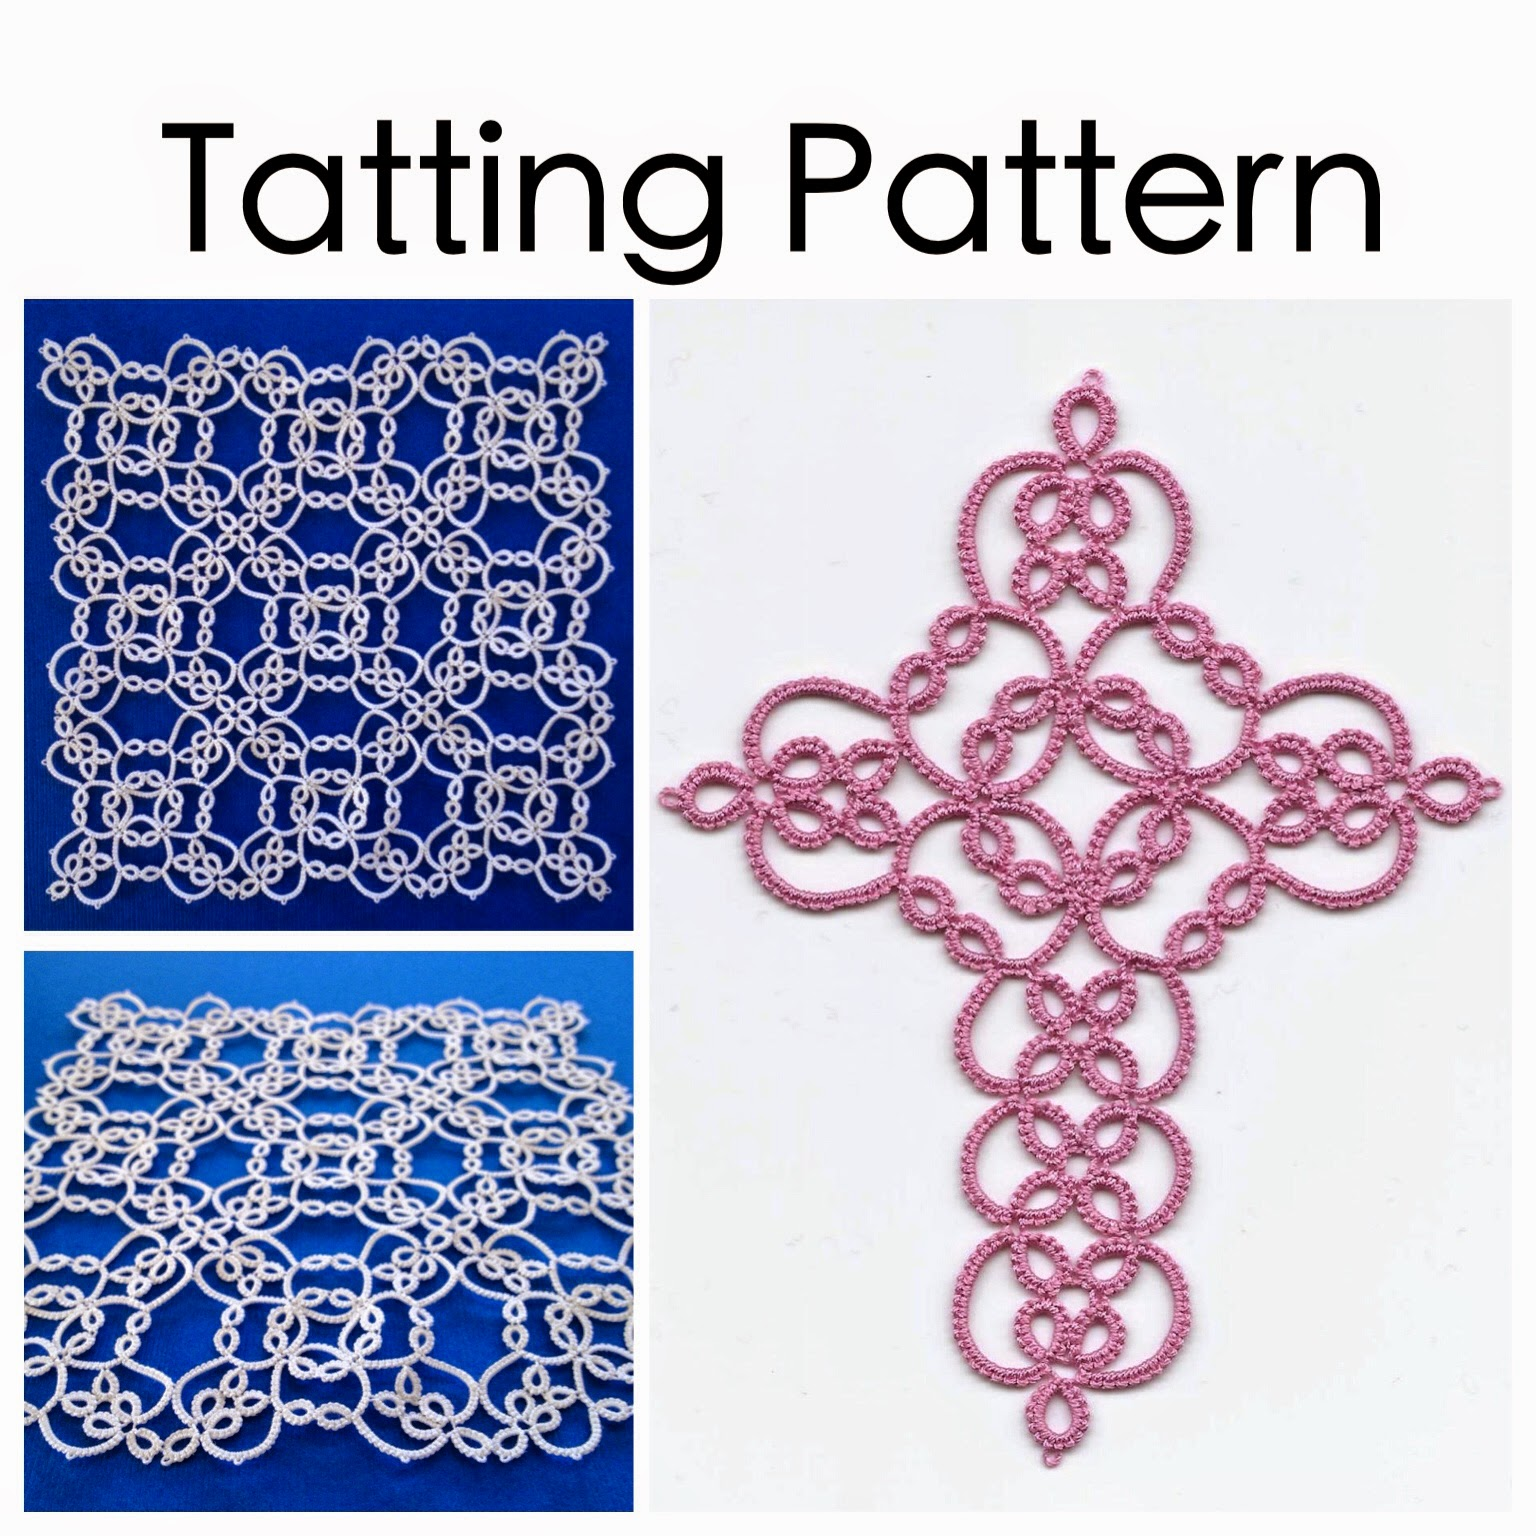 https://www.etsy.com/listing/208781399/pdf-tatting-pattern-garden-cross-and?